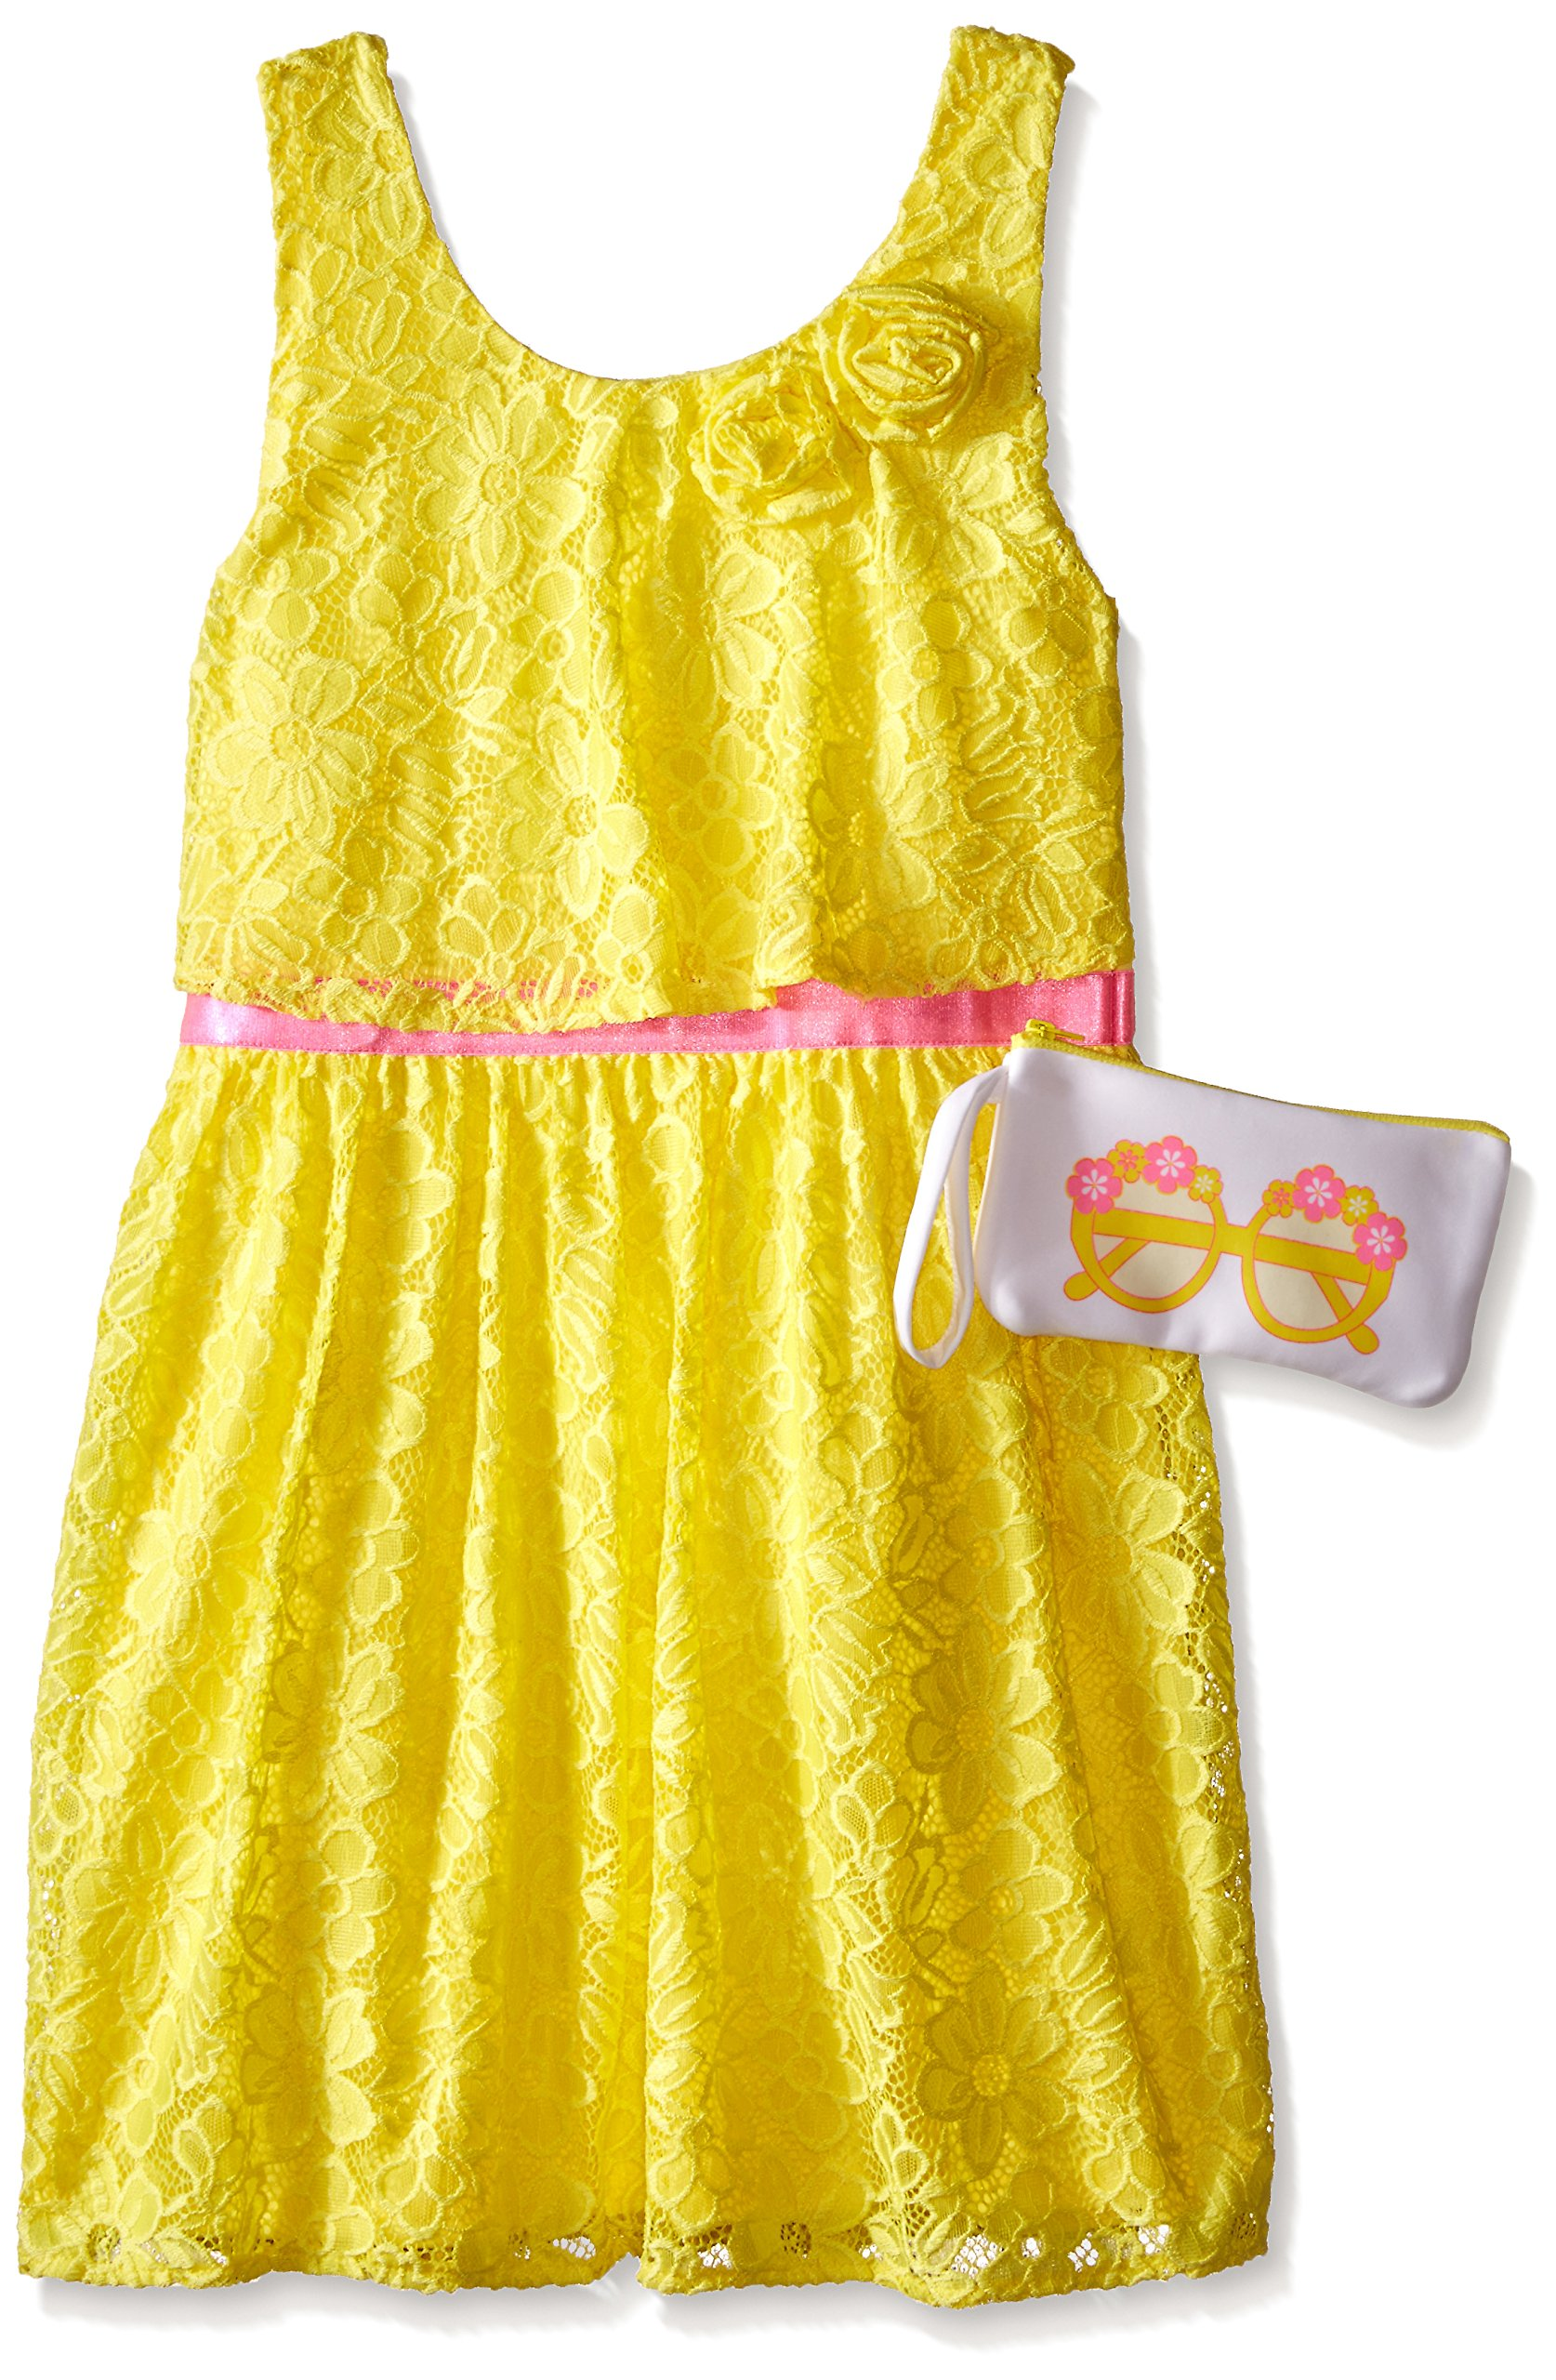 Pogo Club Big Girls Weekend in Newport Lace Dress with Bag Sun Yellow Small/7/8